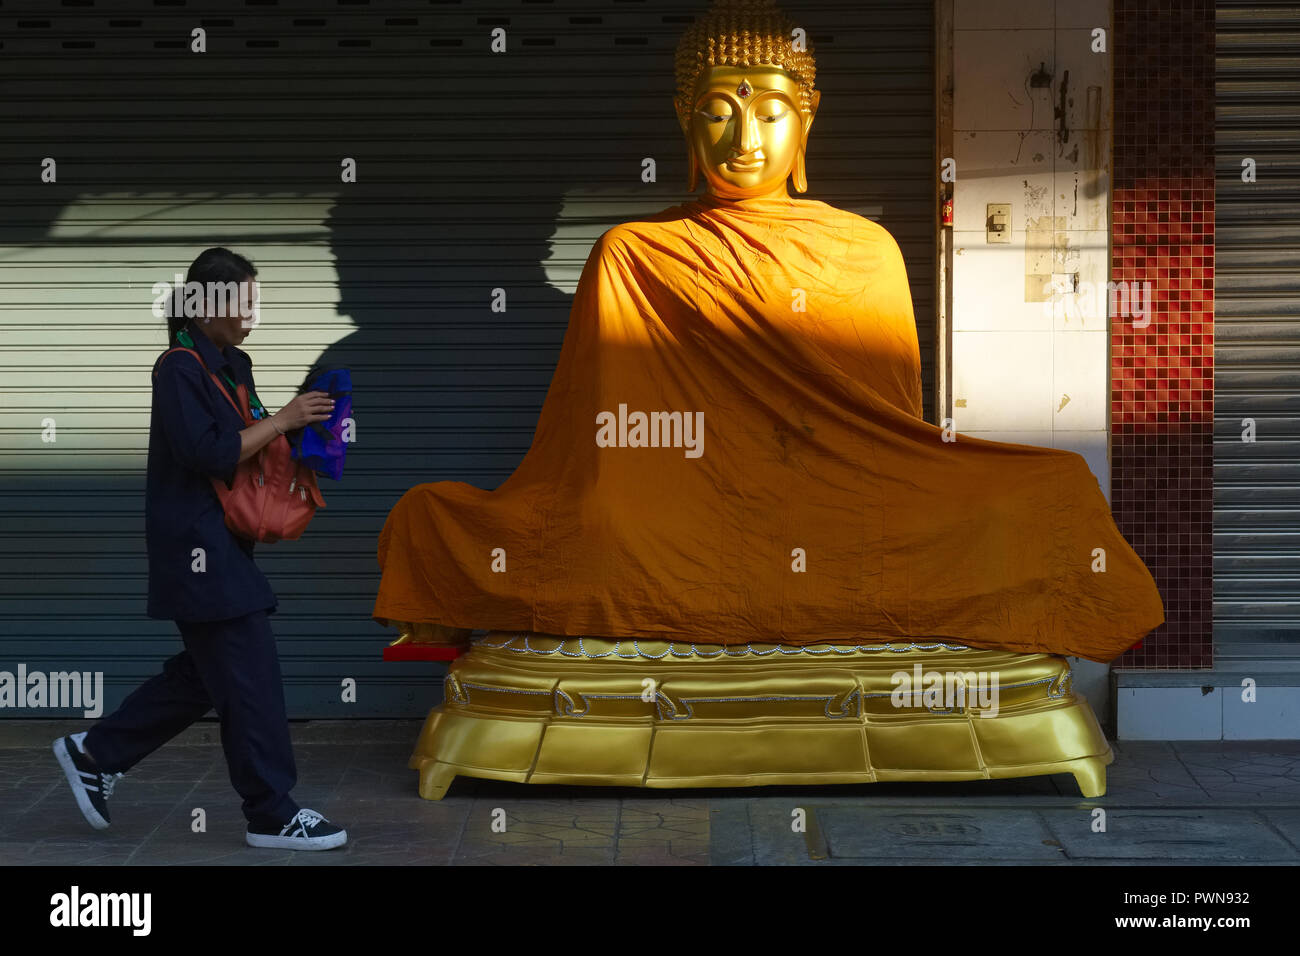 An early morning walker passing a Buddha statue placed in front of a shop for religious artifacts, in Bamrung Muang Road, Bangkok, Thailand - Stock Image